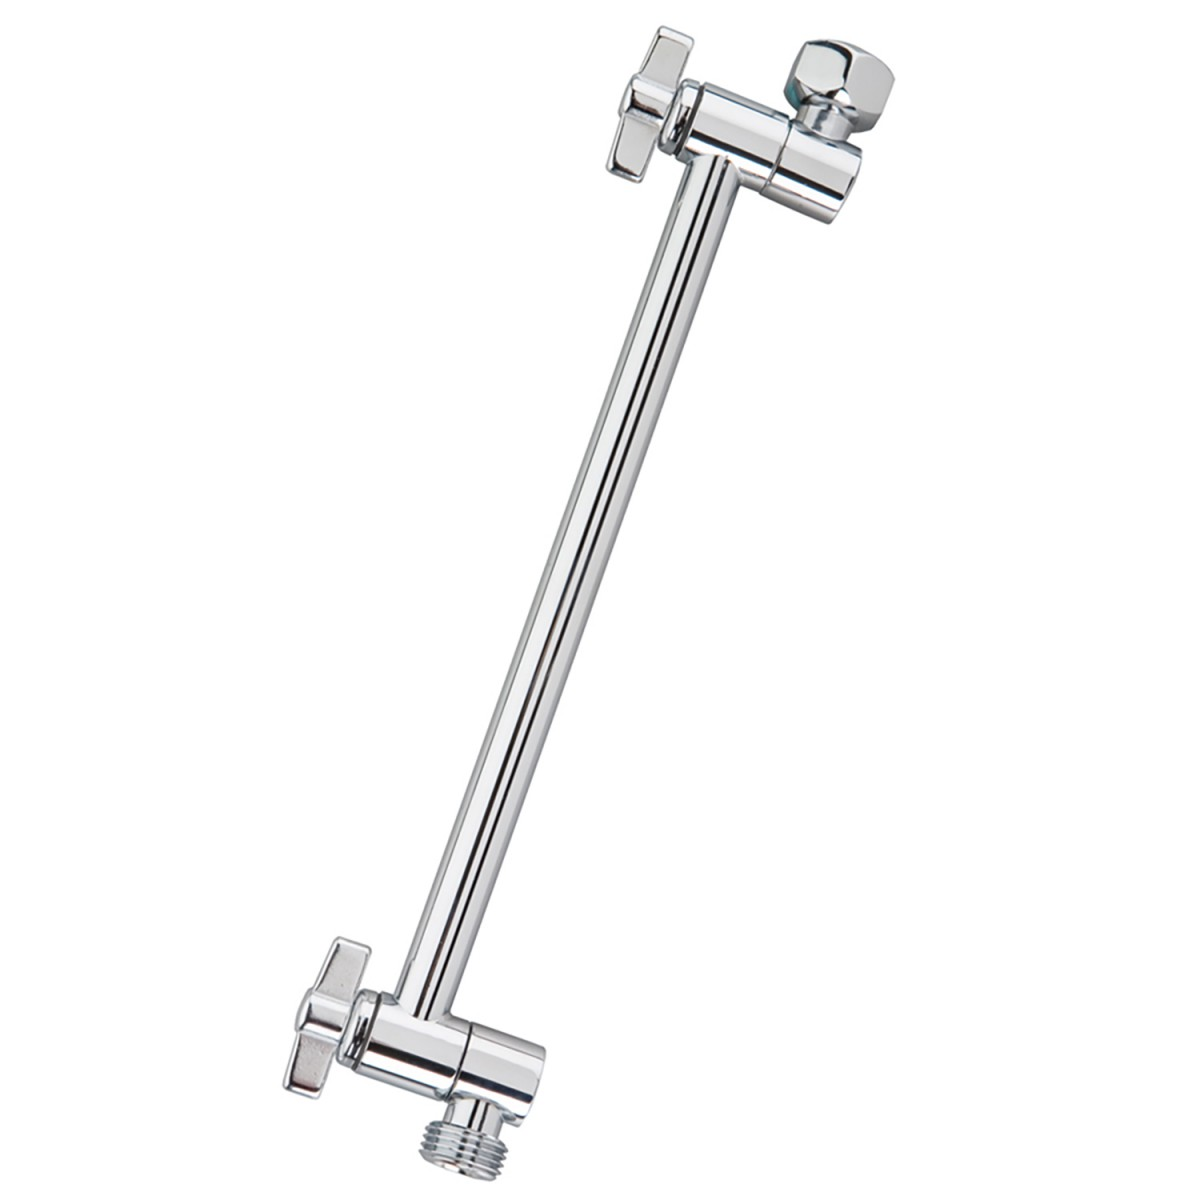 Rda 150 Culligan Shower Exstension Arm